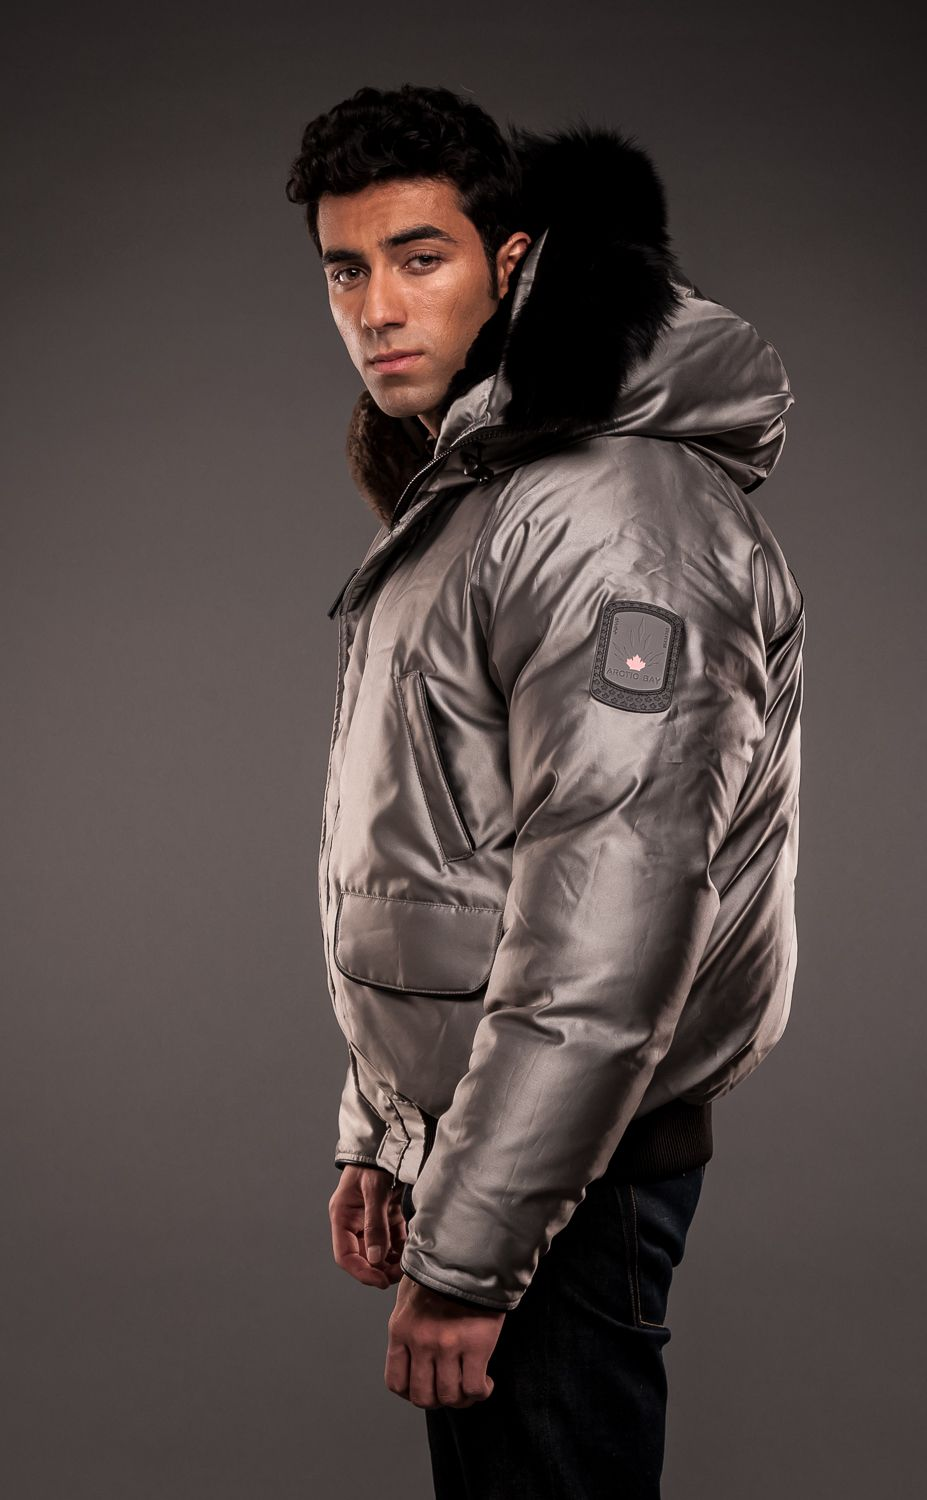 a226ca27c69 Arctic Bay Inuvik Bomber Man Dressing Style